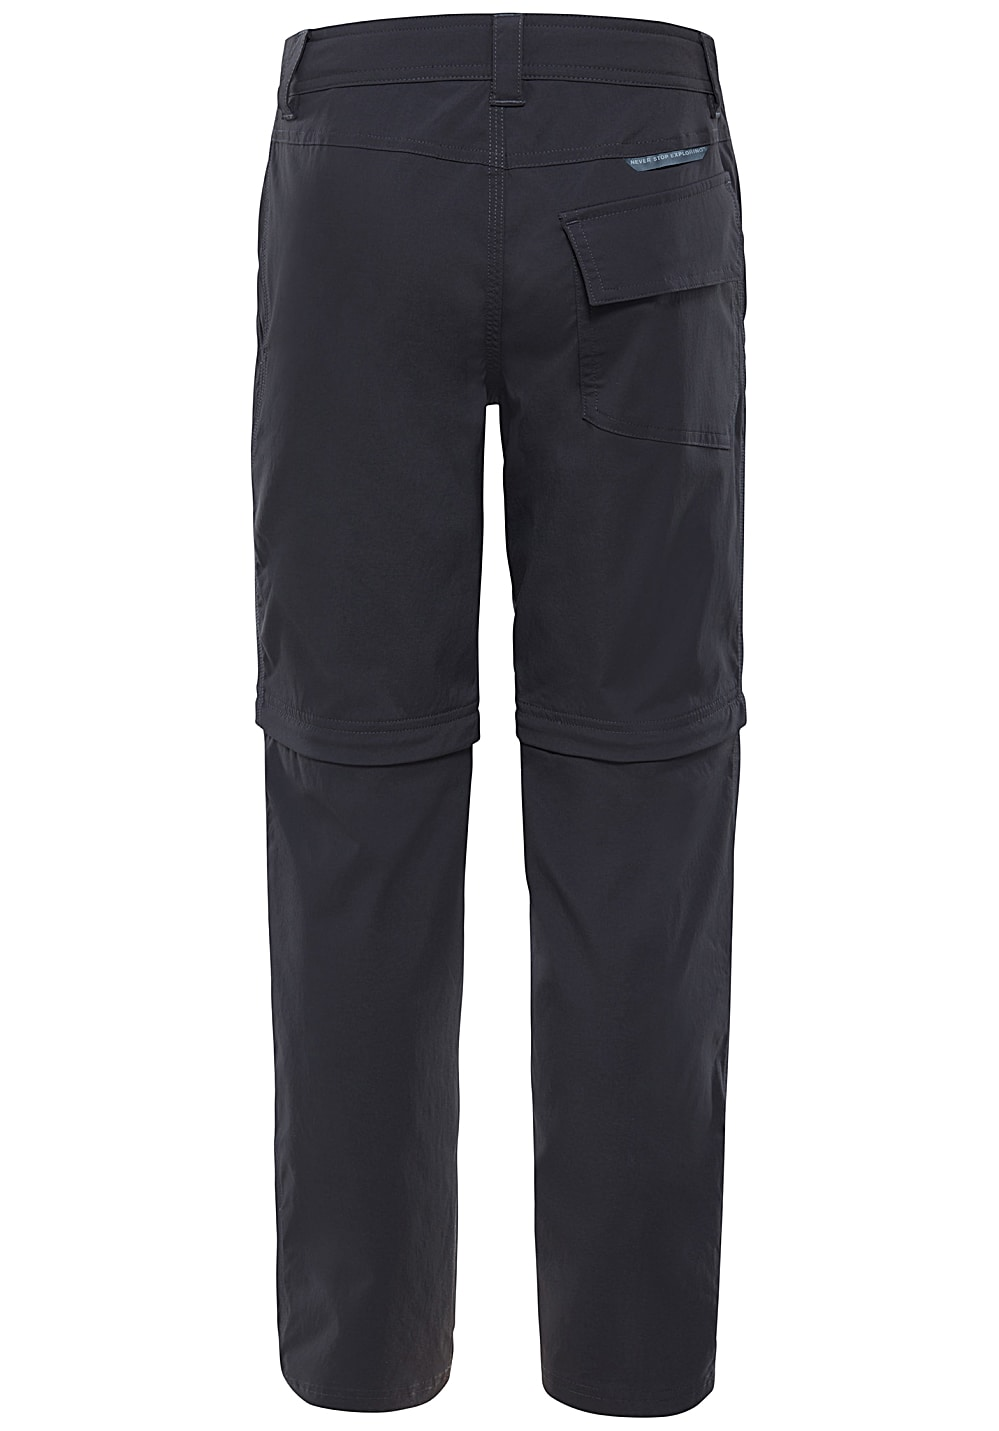 THE NORTH FACE Convertible Hike - Outdoorhose für Jungs Grau